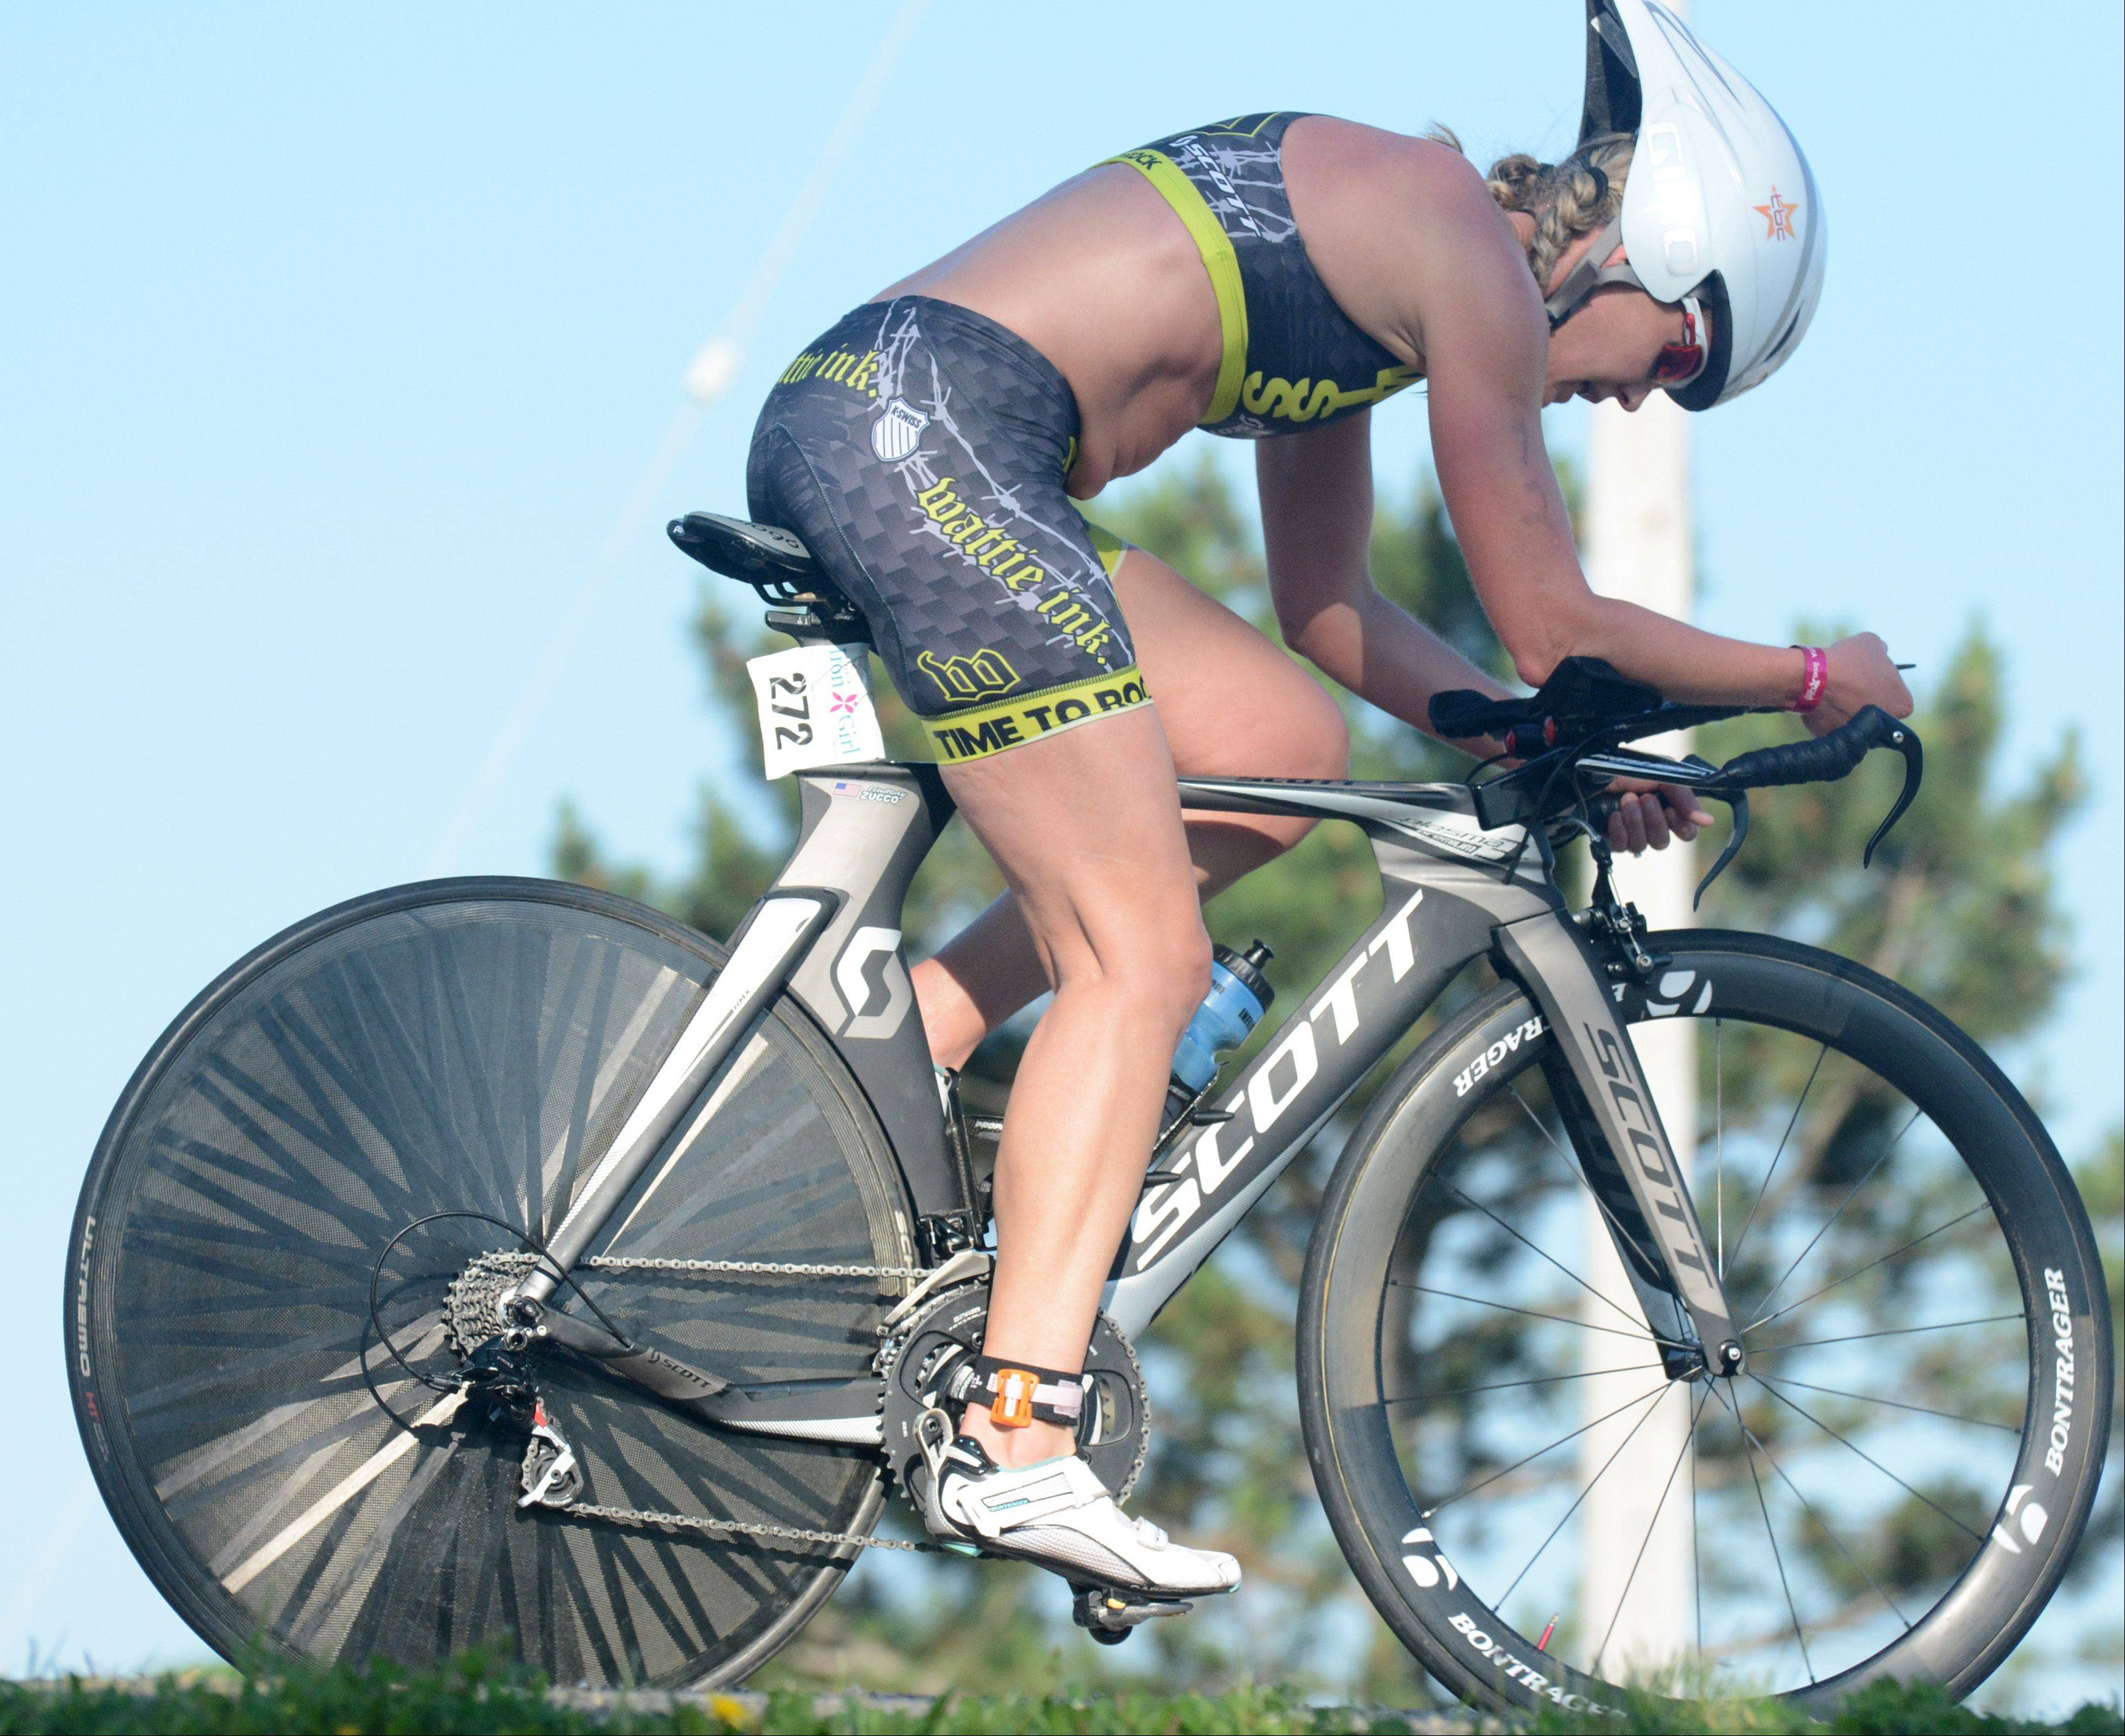 Lindsay Zucco, of Elburn, competes in the Athleta Iron Girl Triathlon in Lake Zurich Sunday.